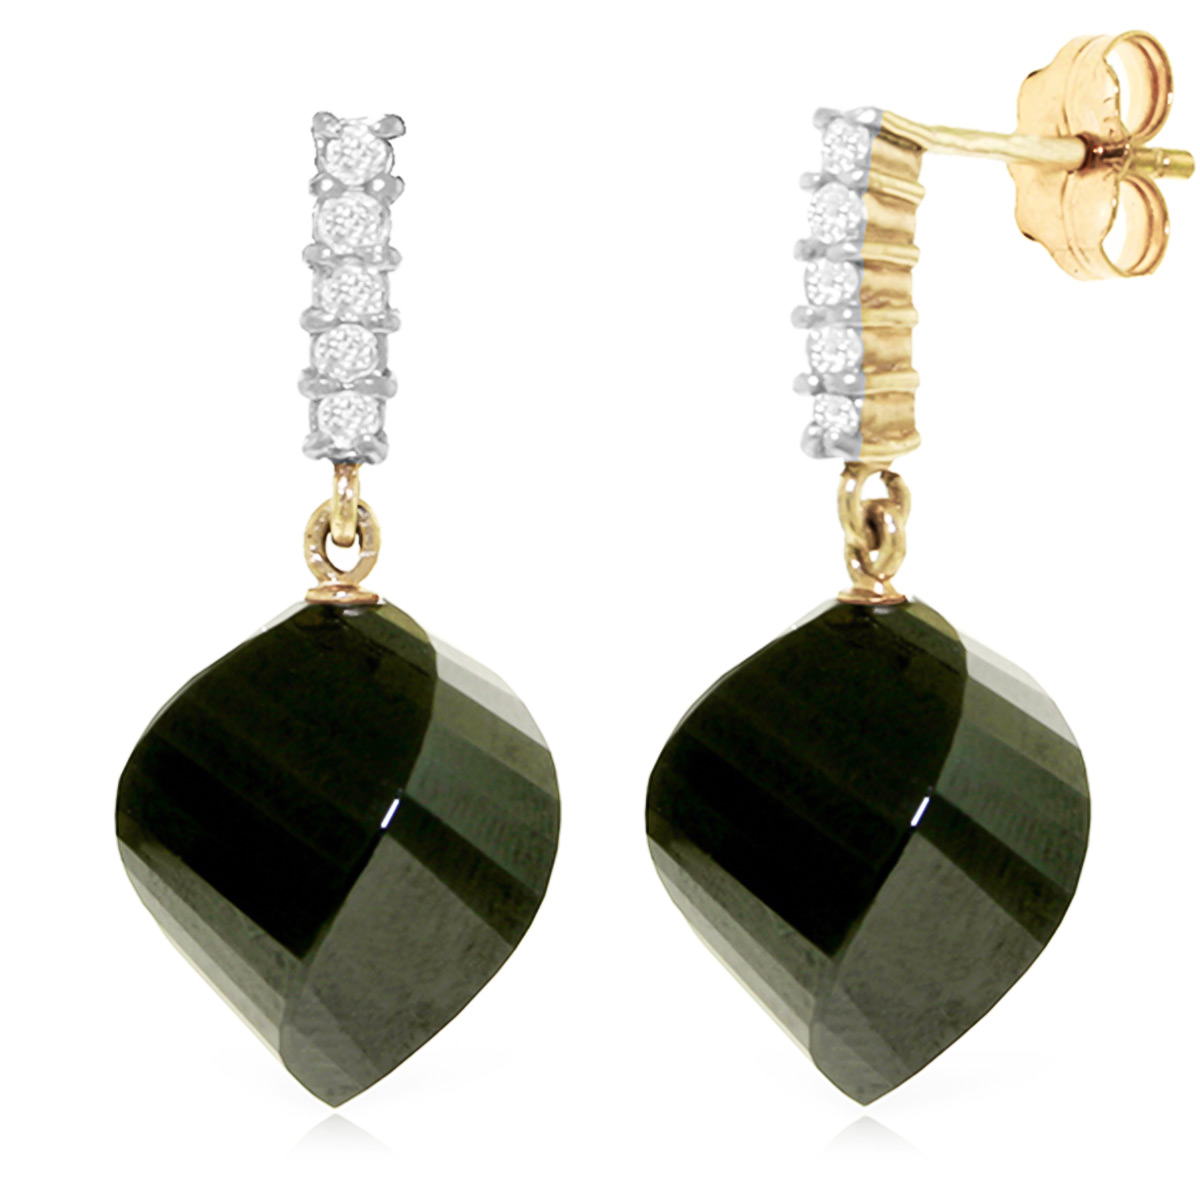 Black Spinel Stud Earrings 31.15 ctw in 9ct Gold